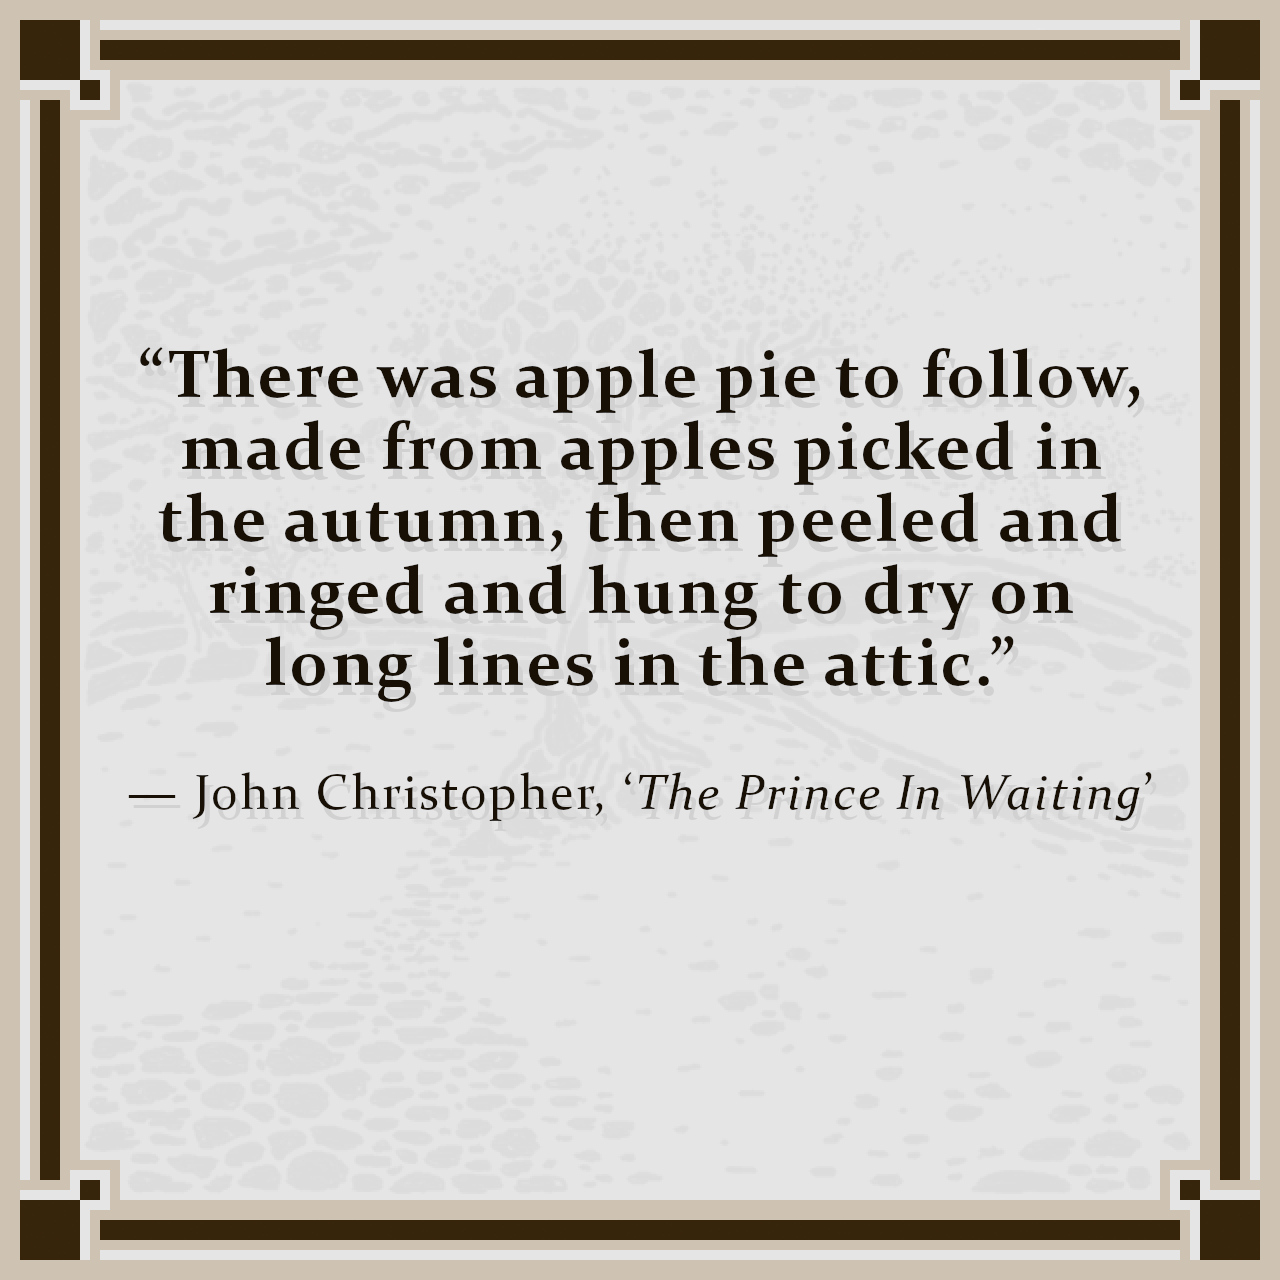 """""""There was apple pie to follow, made from apples picked in the autumn, then peeled and ringed and hung to dry on long lines in the attic."""" — John Christopher, 'The Prince In Waiting'"""